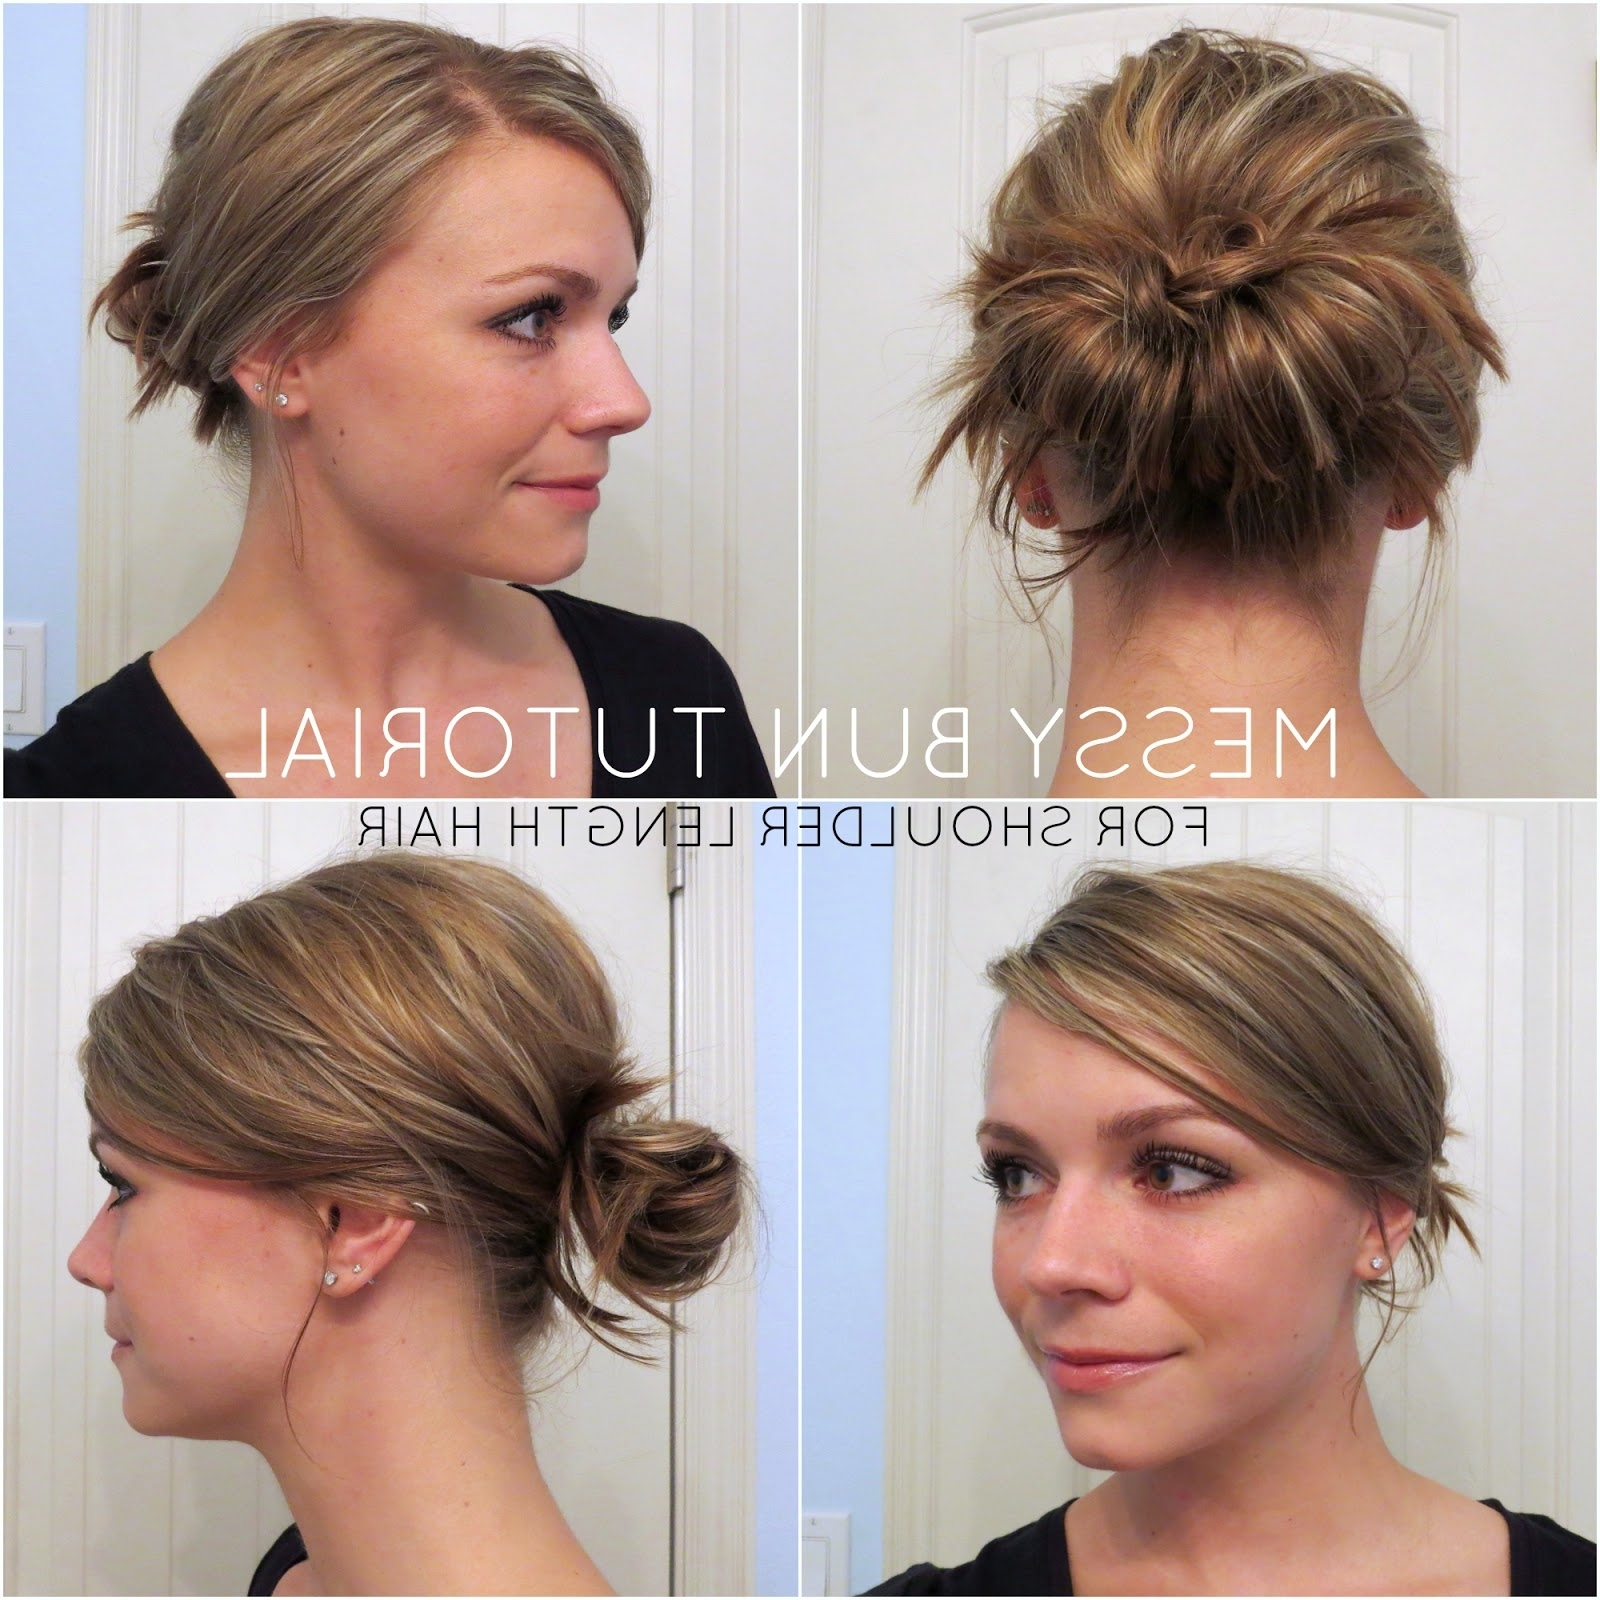 Bye Bye Beehive │ A Hairstyle Blog: Messy Bun For Shoulder Length Hair Within Messy Updos For Medium Hair (View 4 of 15)